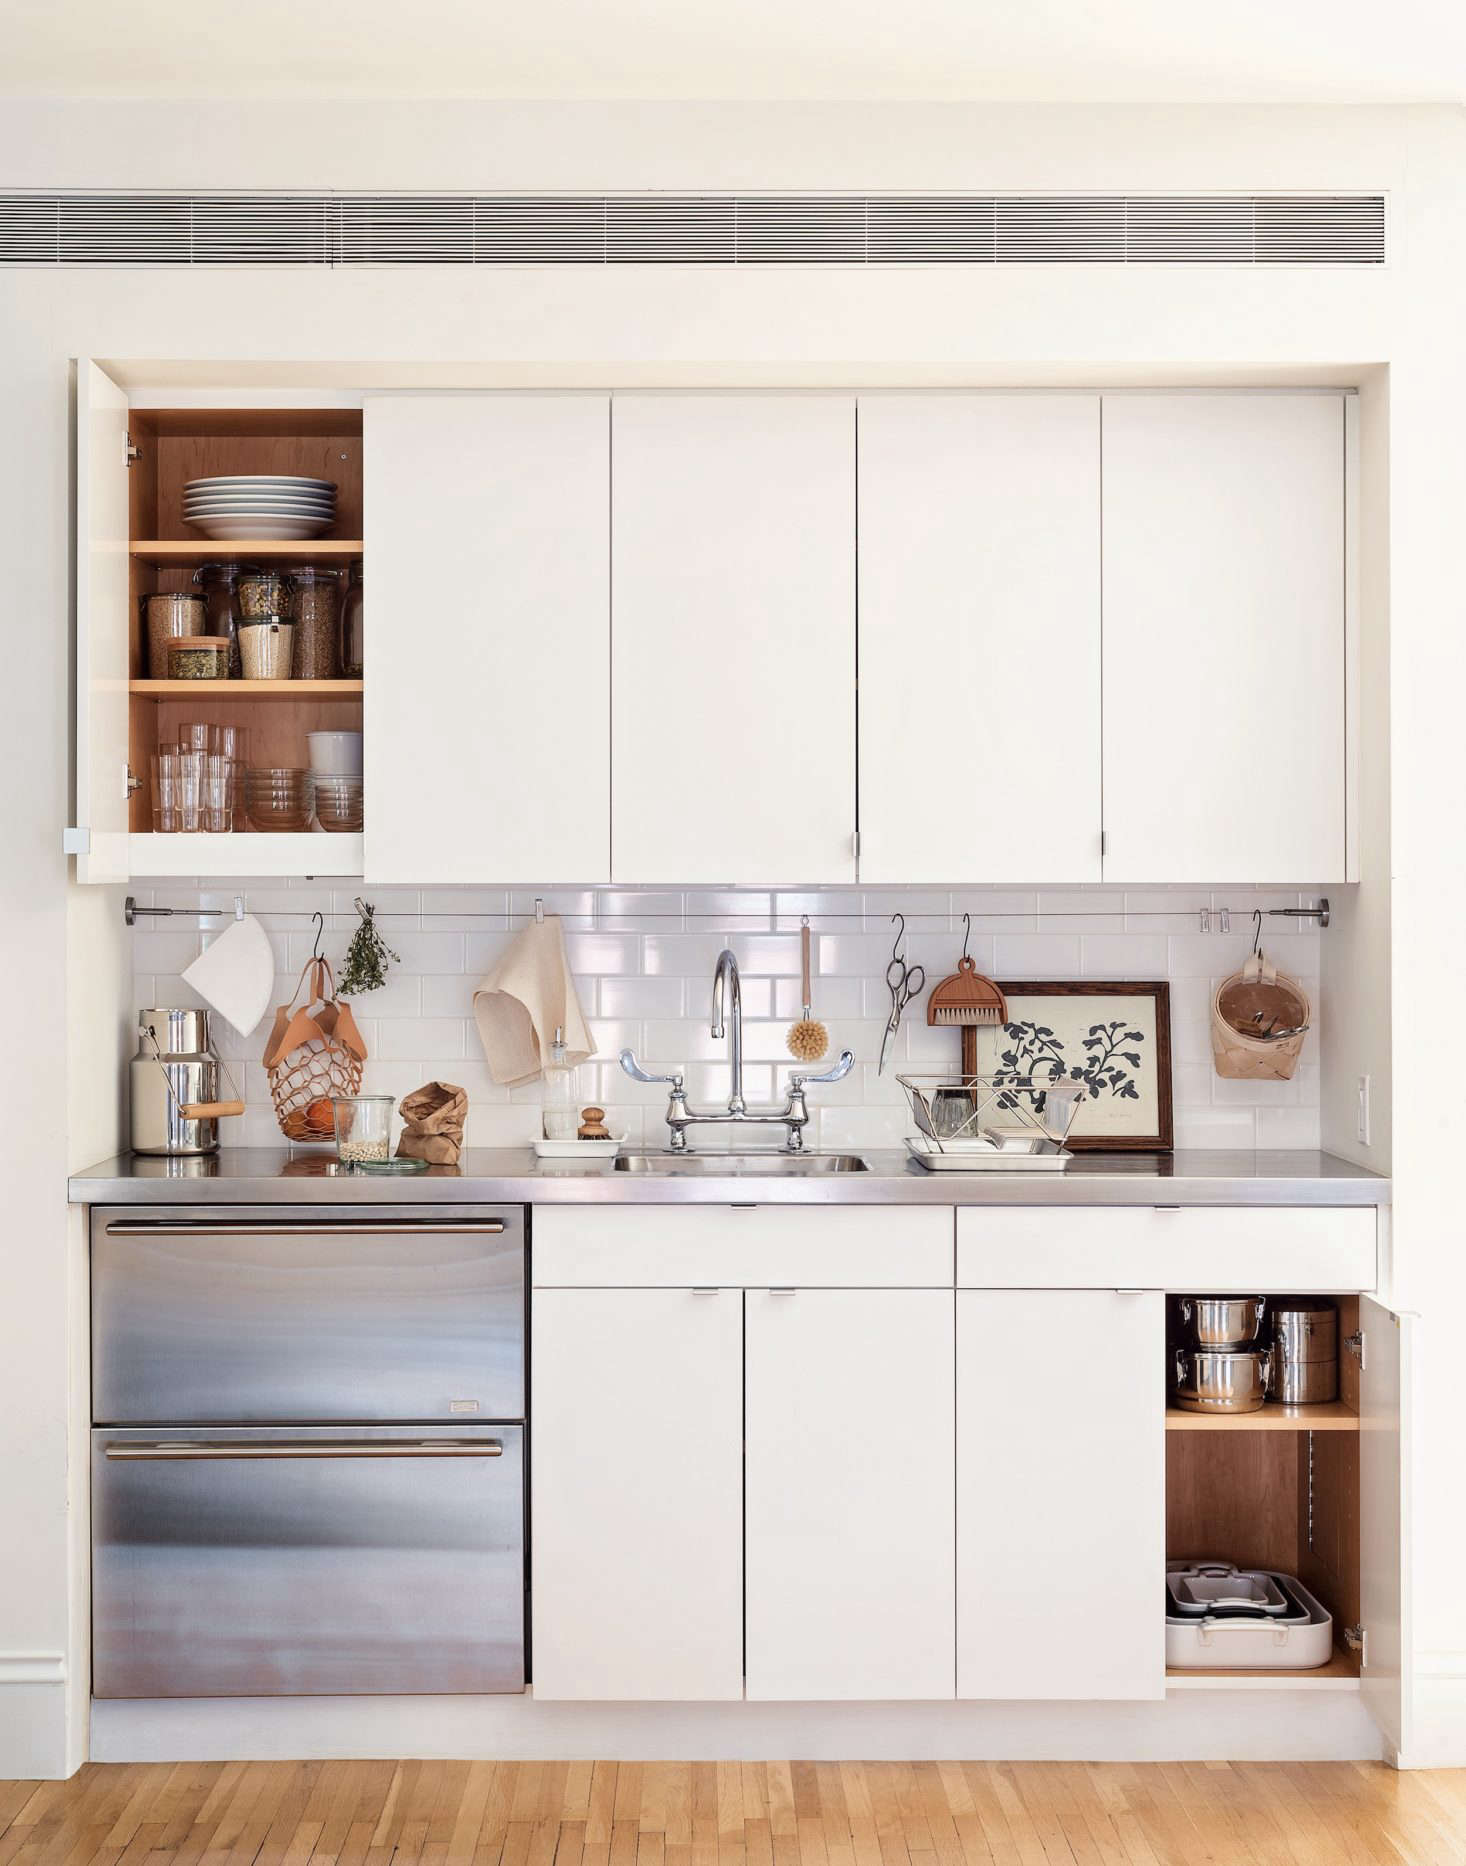 Take a page from this Brooklyn kitchenette and pare down the contents of your kitchen to just the essentials. You don't need 10 different pots and pans (in fact, you need only five), and are you ever going to use that Spiralizer? Photograph by Matthew Robbins from Remodelista: The Organized Home. See 5 Space-Saving Ideas to Steal from a Brooklyn Kitchenette, Ikea Hack Included.